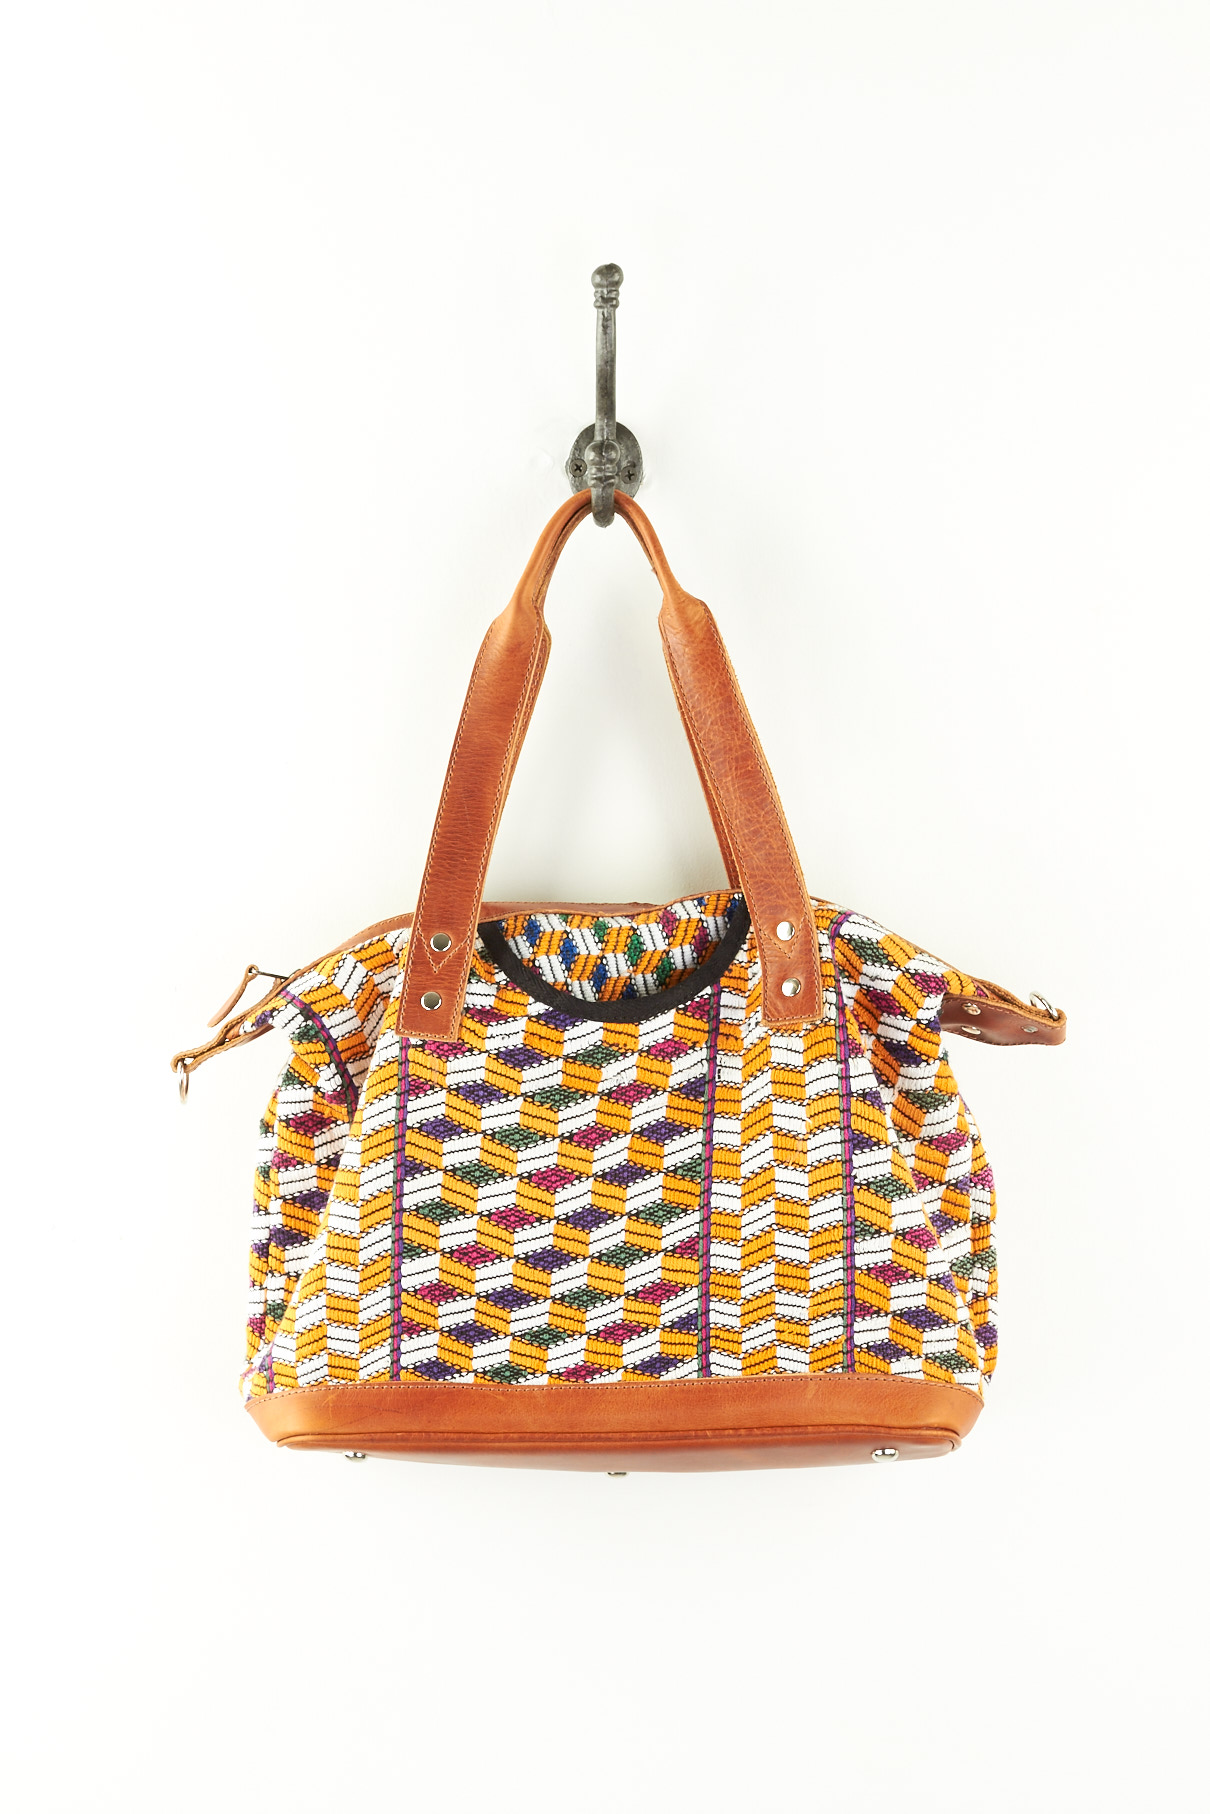 No. 1 Vintage Sonia Carryall . $218